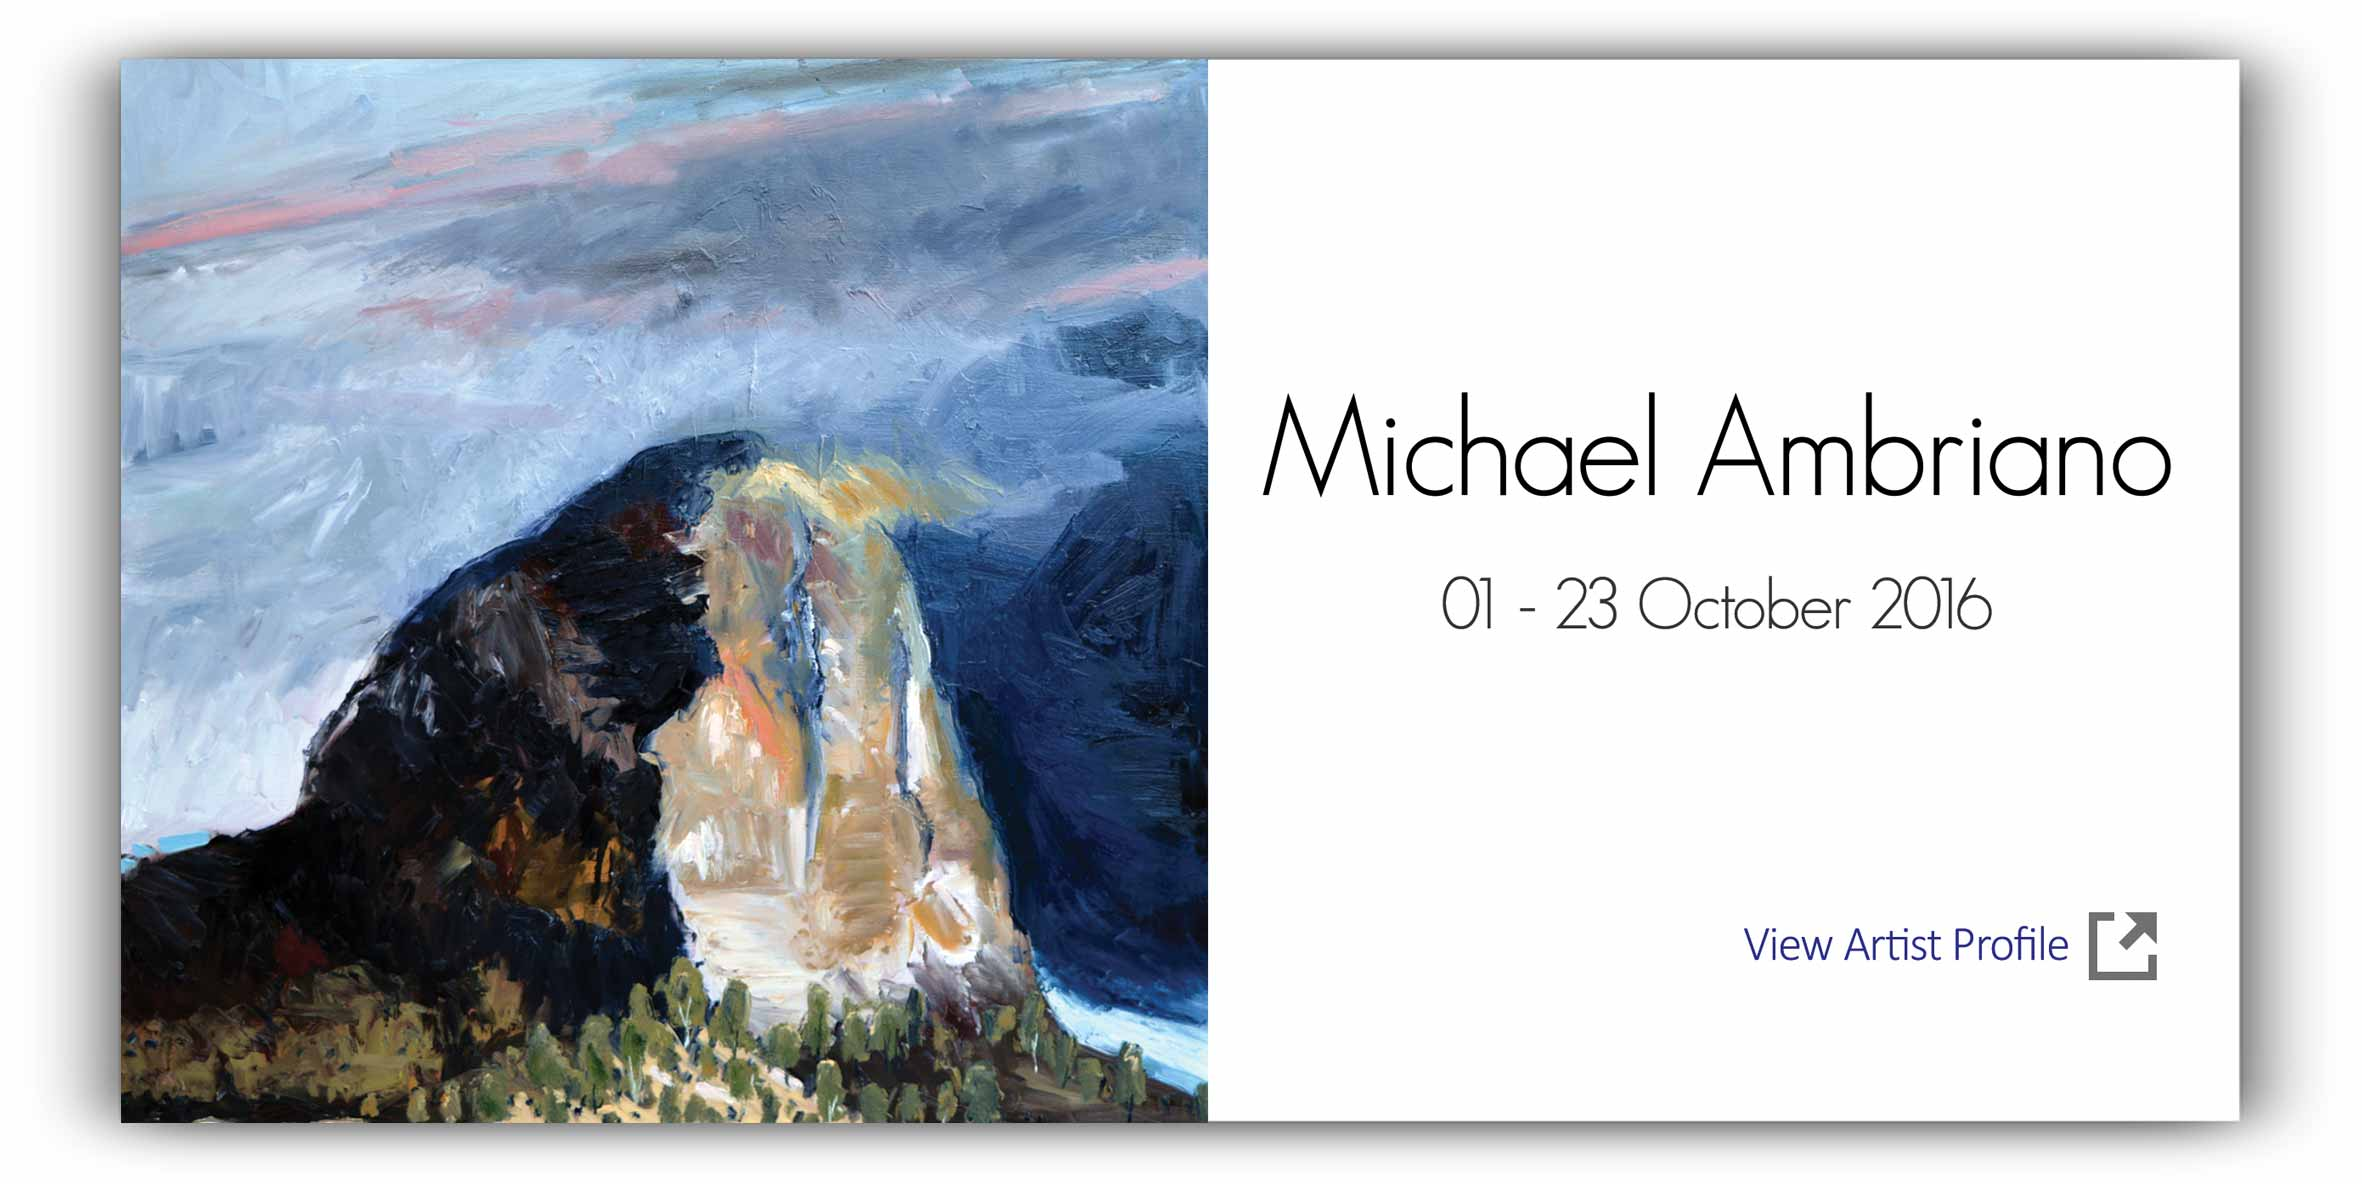 View Exhibition at Artsite Gallery, Sydney: 01 - 23 October 2016:Michael Ambrian